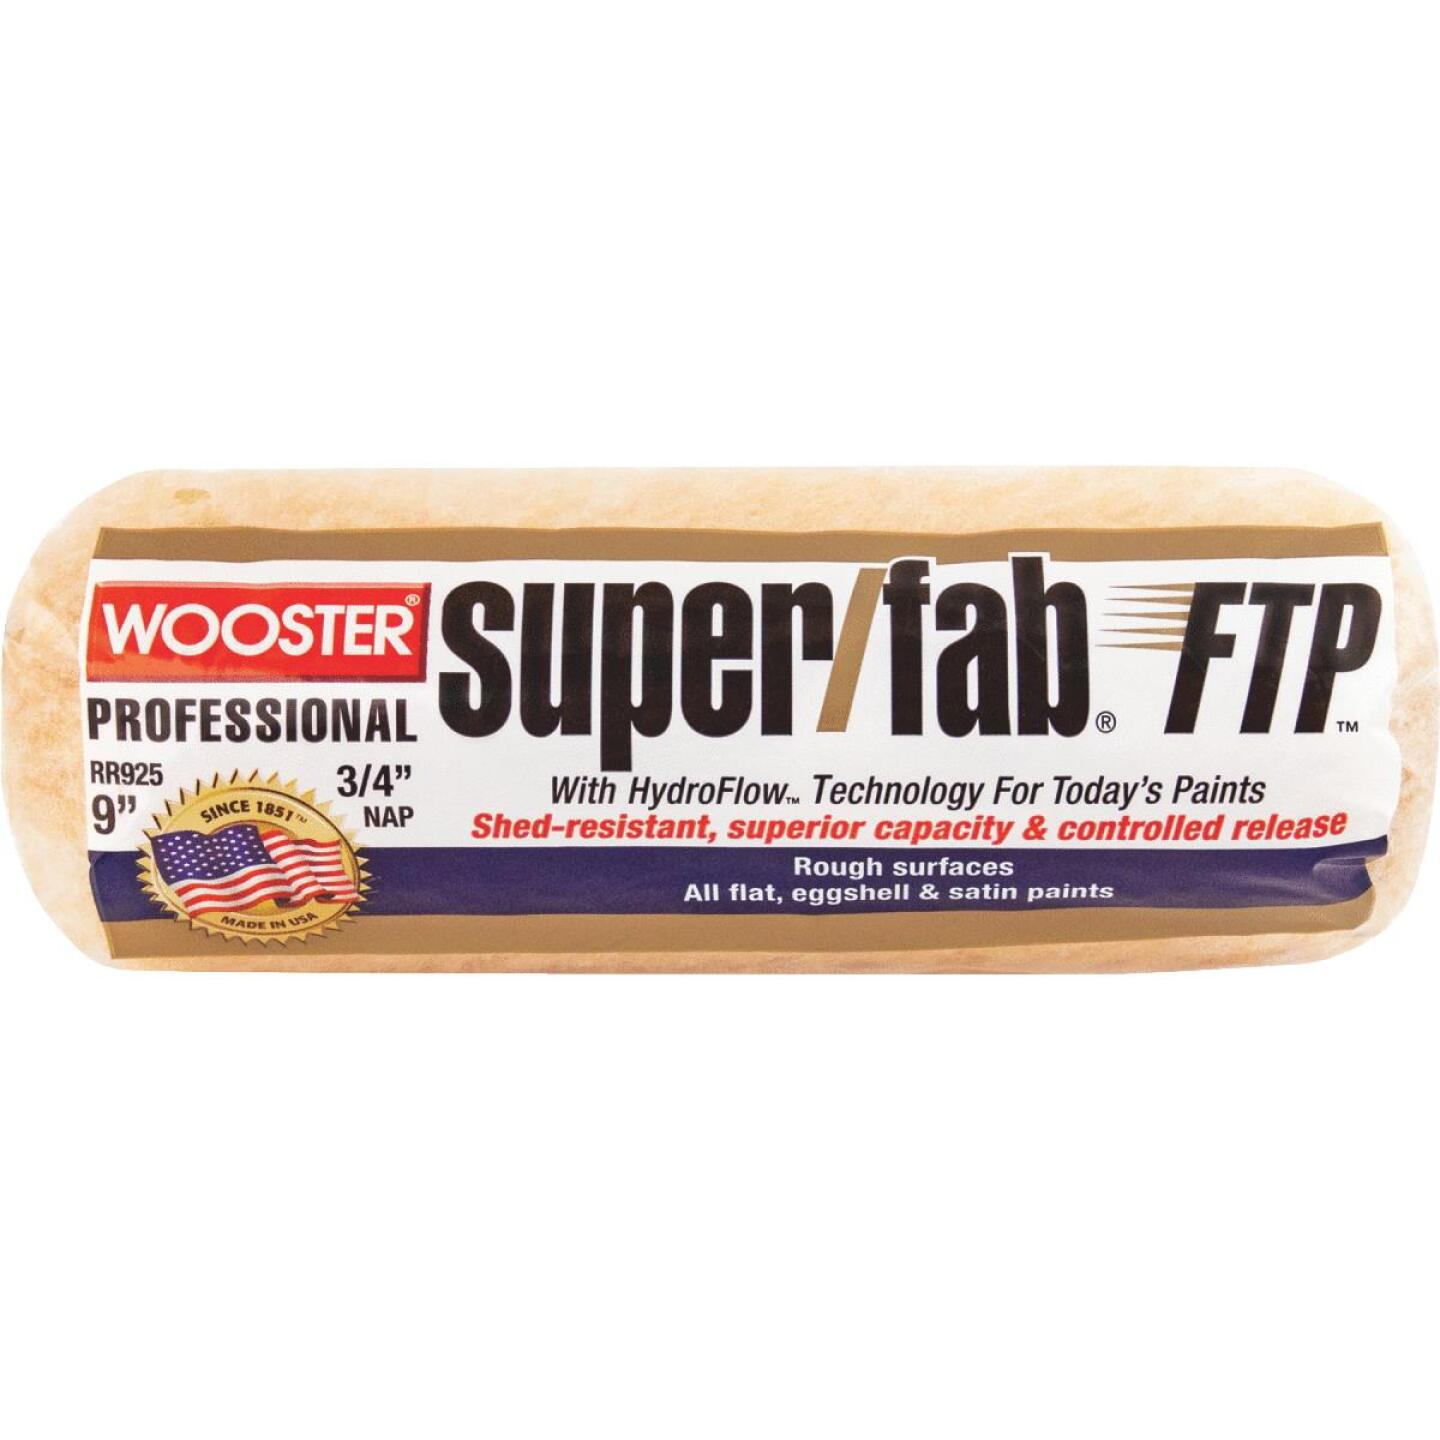 Wooster Super/Fab FTP 9 In. x 3/4 In. Knit Fabric Roller Cover Image 1